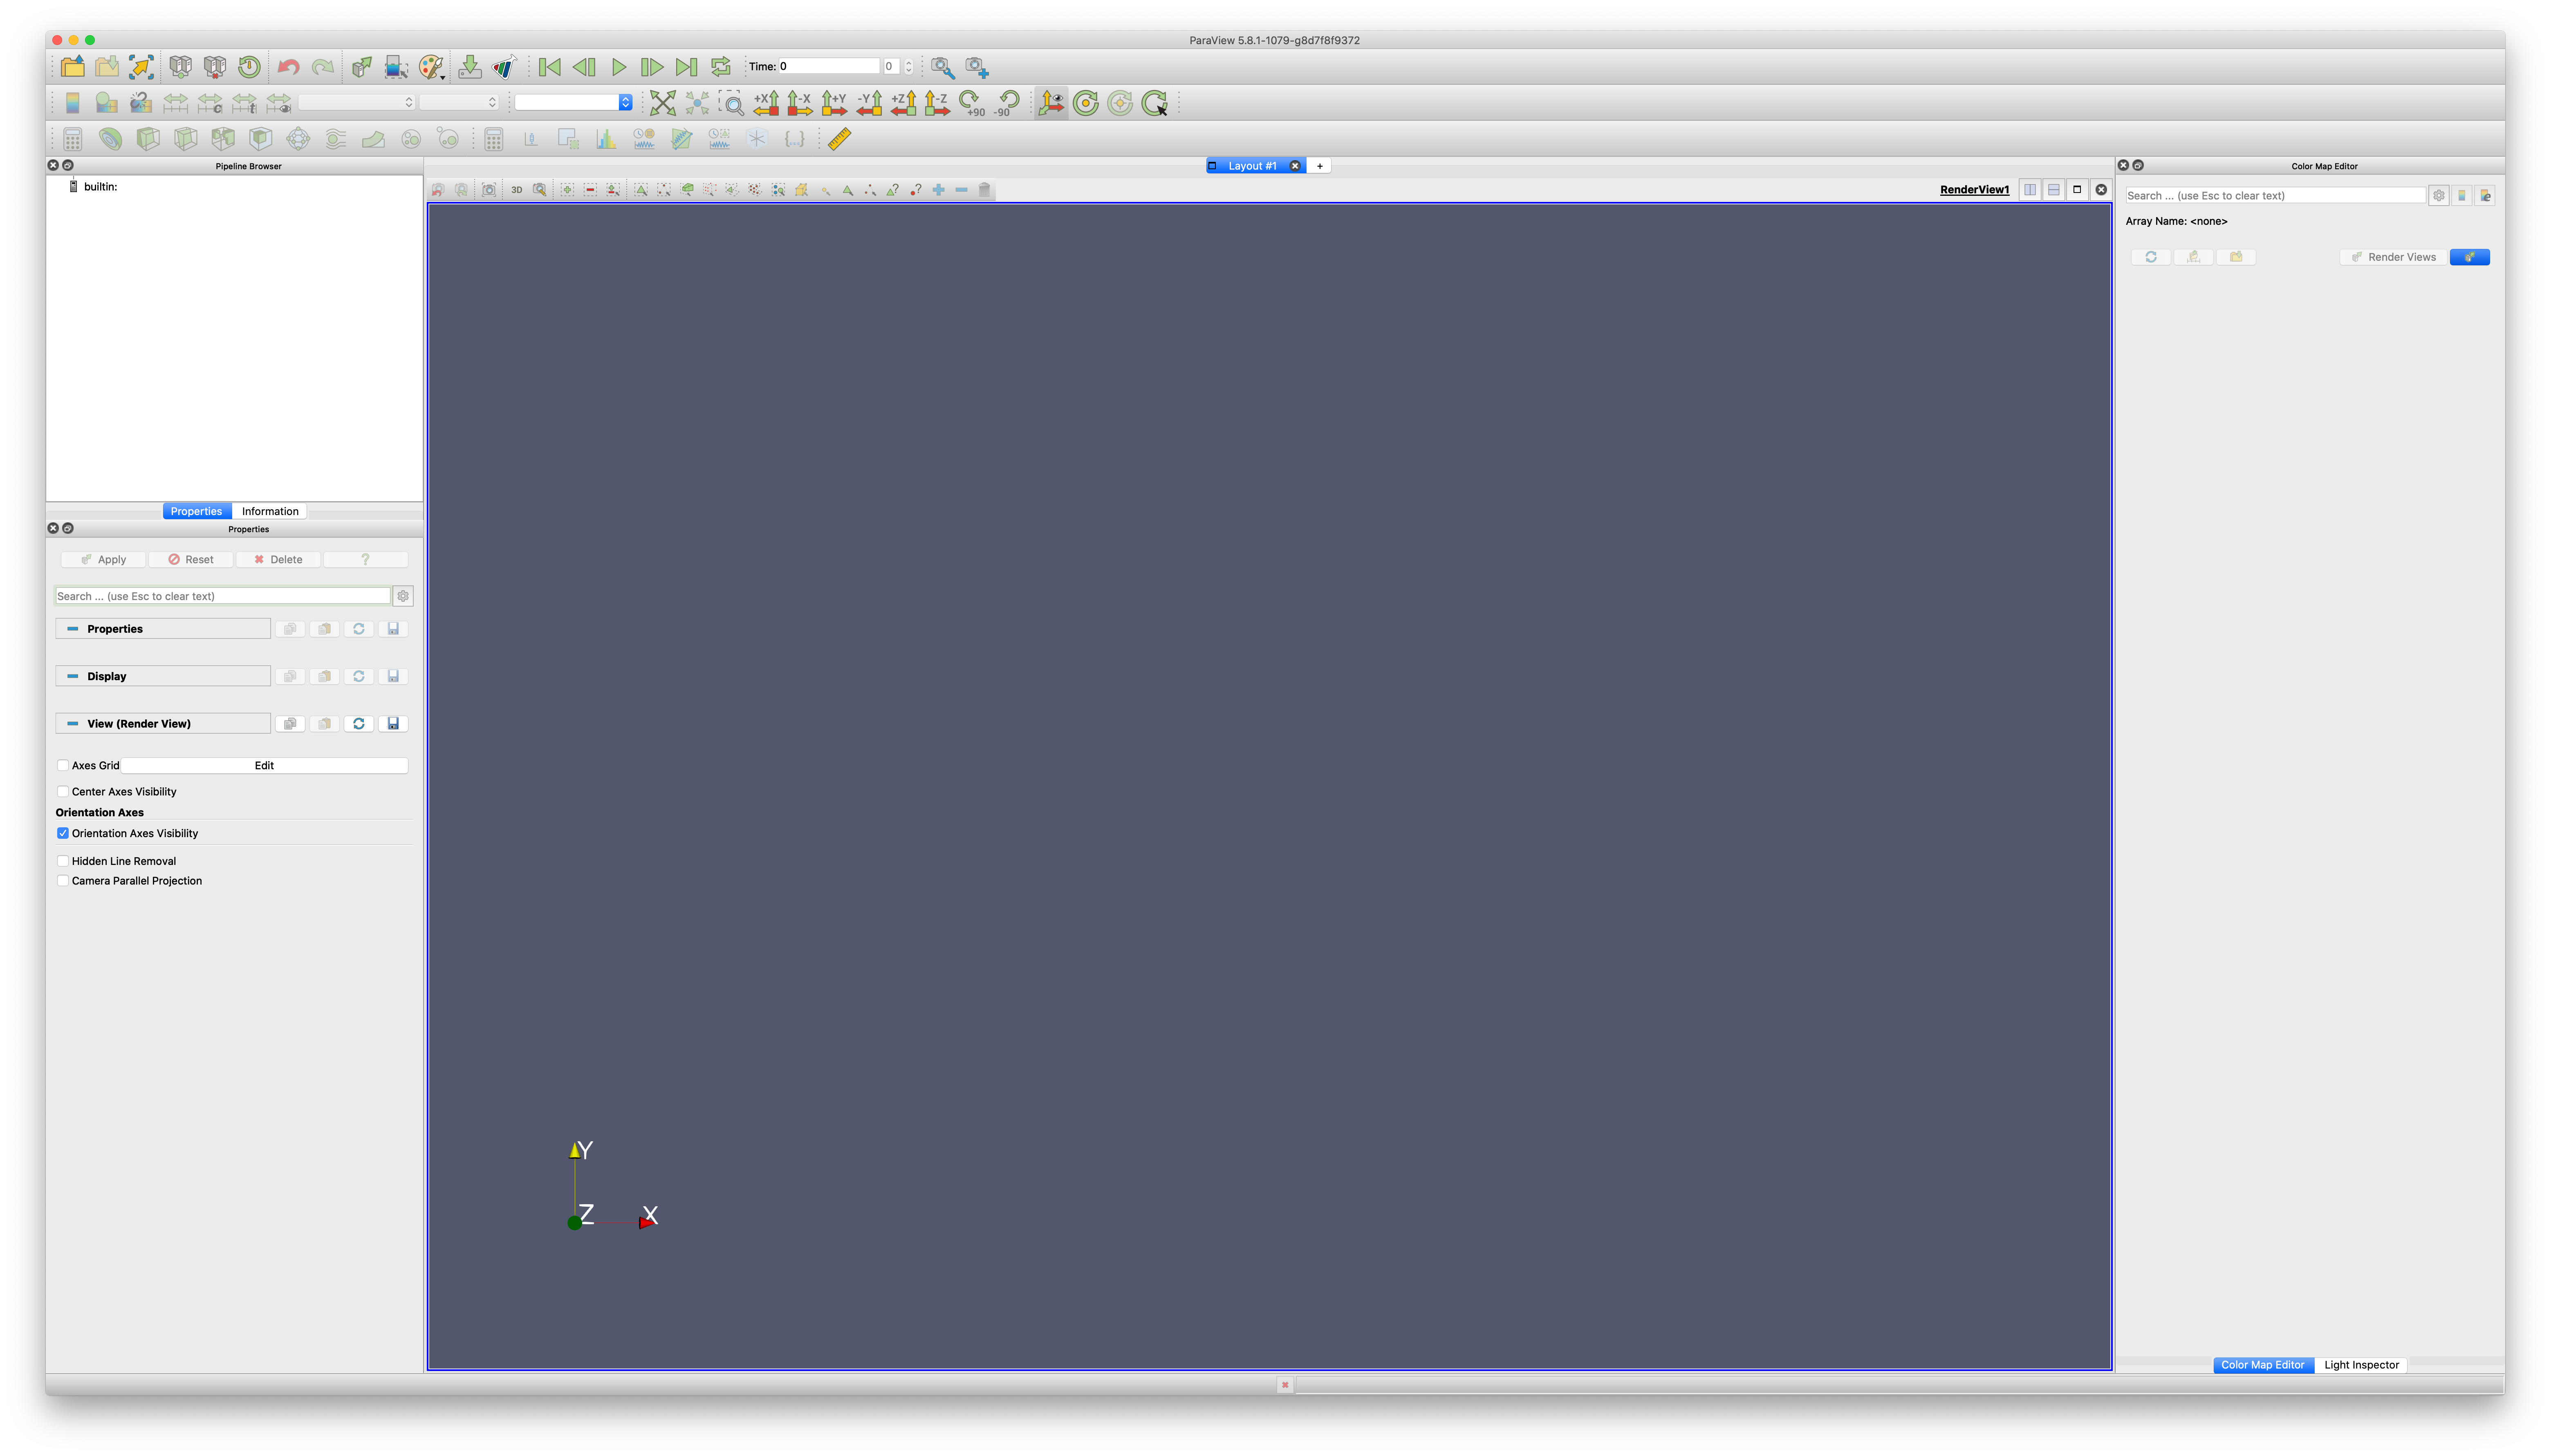 source/Paraview/2D_ocean_example/00-empty-main.png